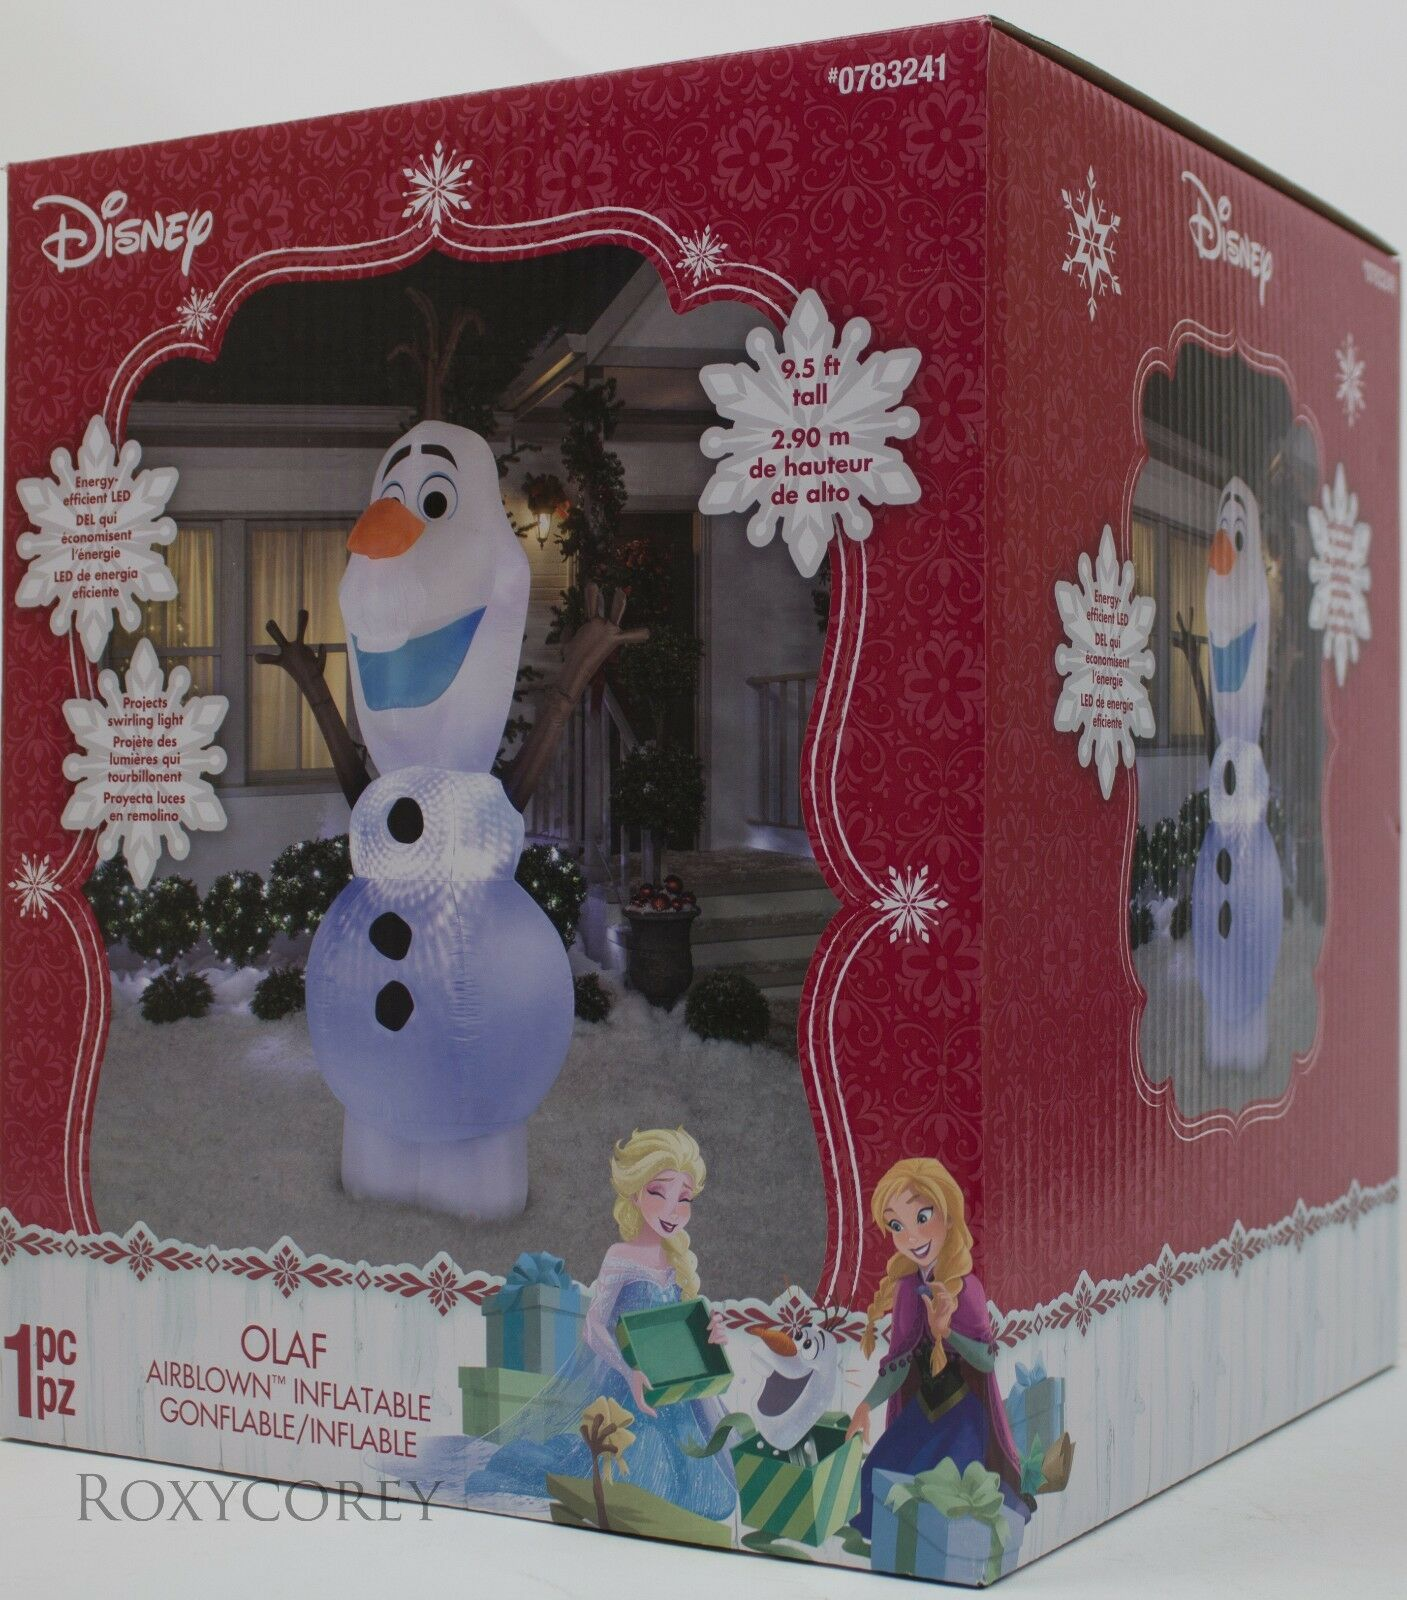 CHRISTMAS DISNEY 9.5 ft Frozen Olaf Light Up Airblown Inflatable NIB ...